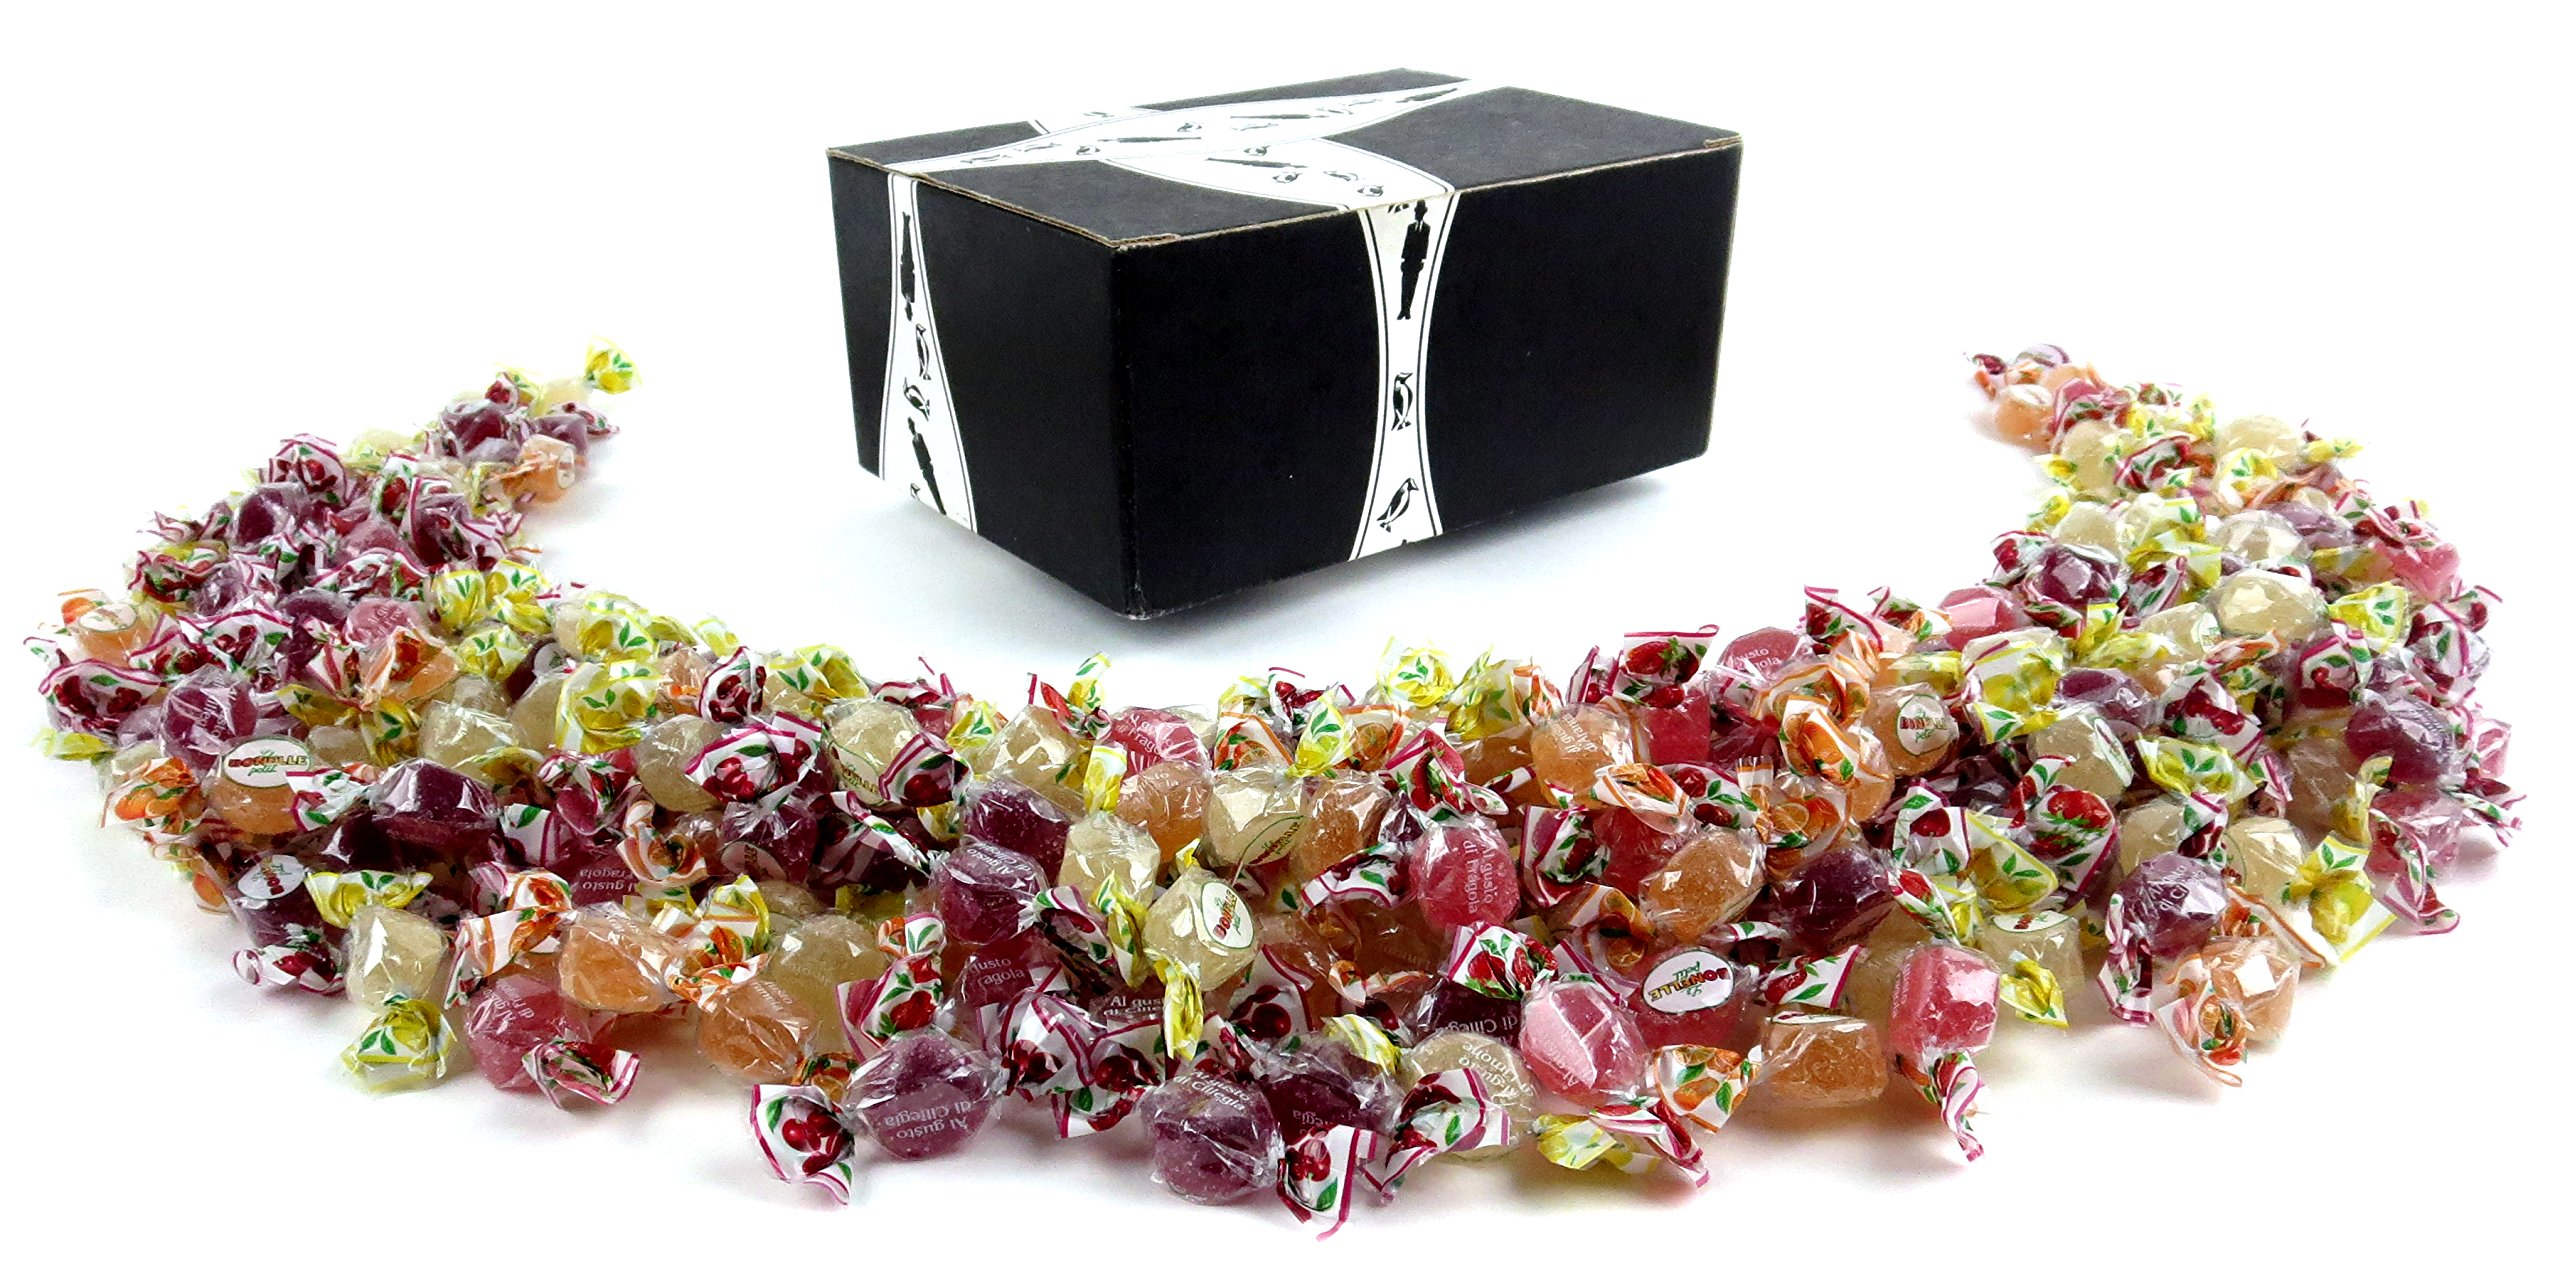 Perugina Bonelle Petit Premium Jelly Candies, 2 lb Bag in a BlackTie Box